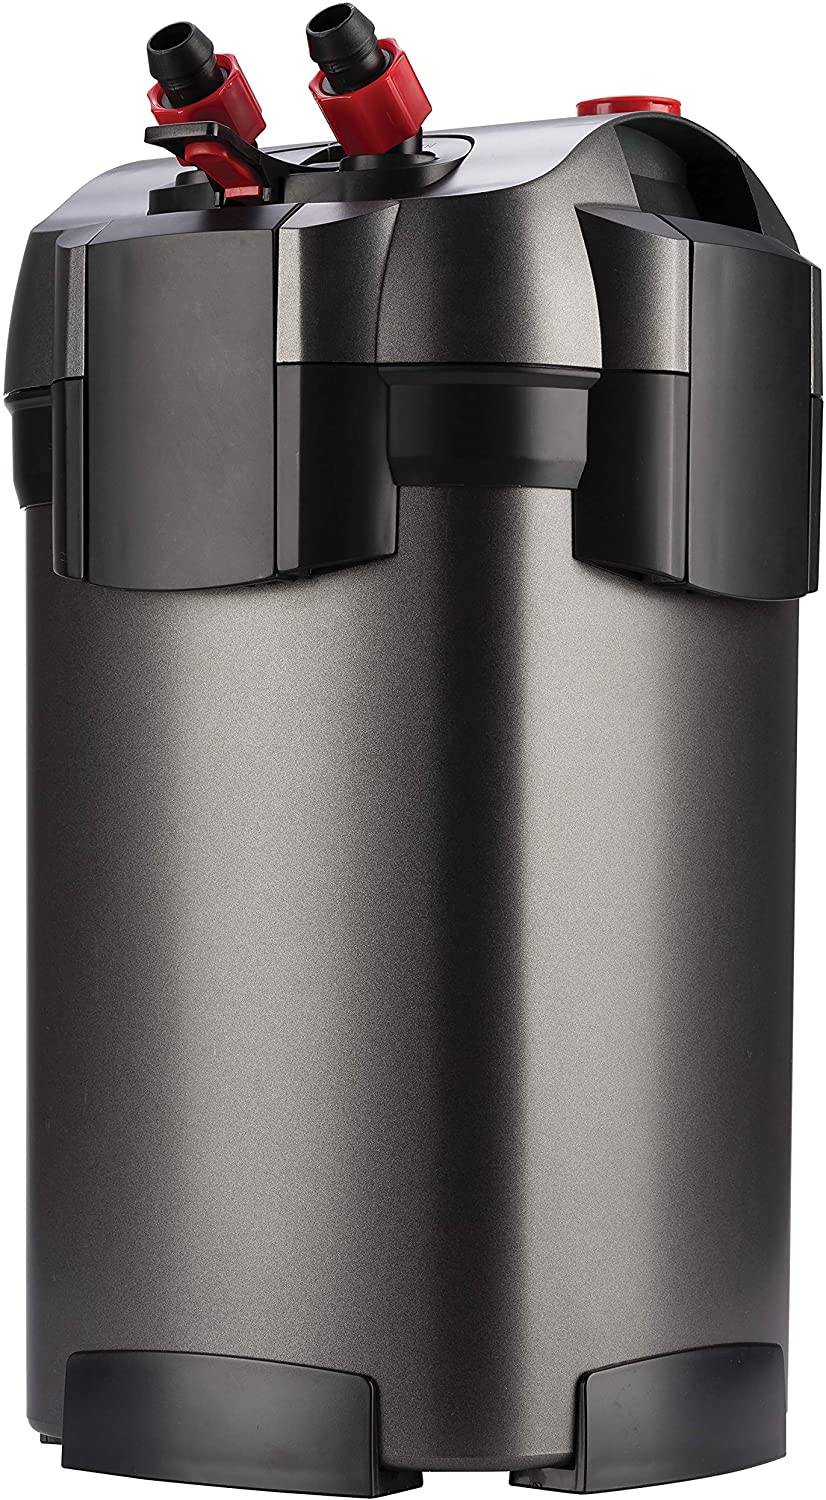 Marineland Magniflow 220 Canister Filter